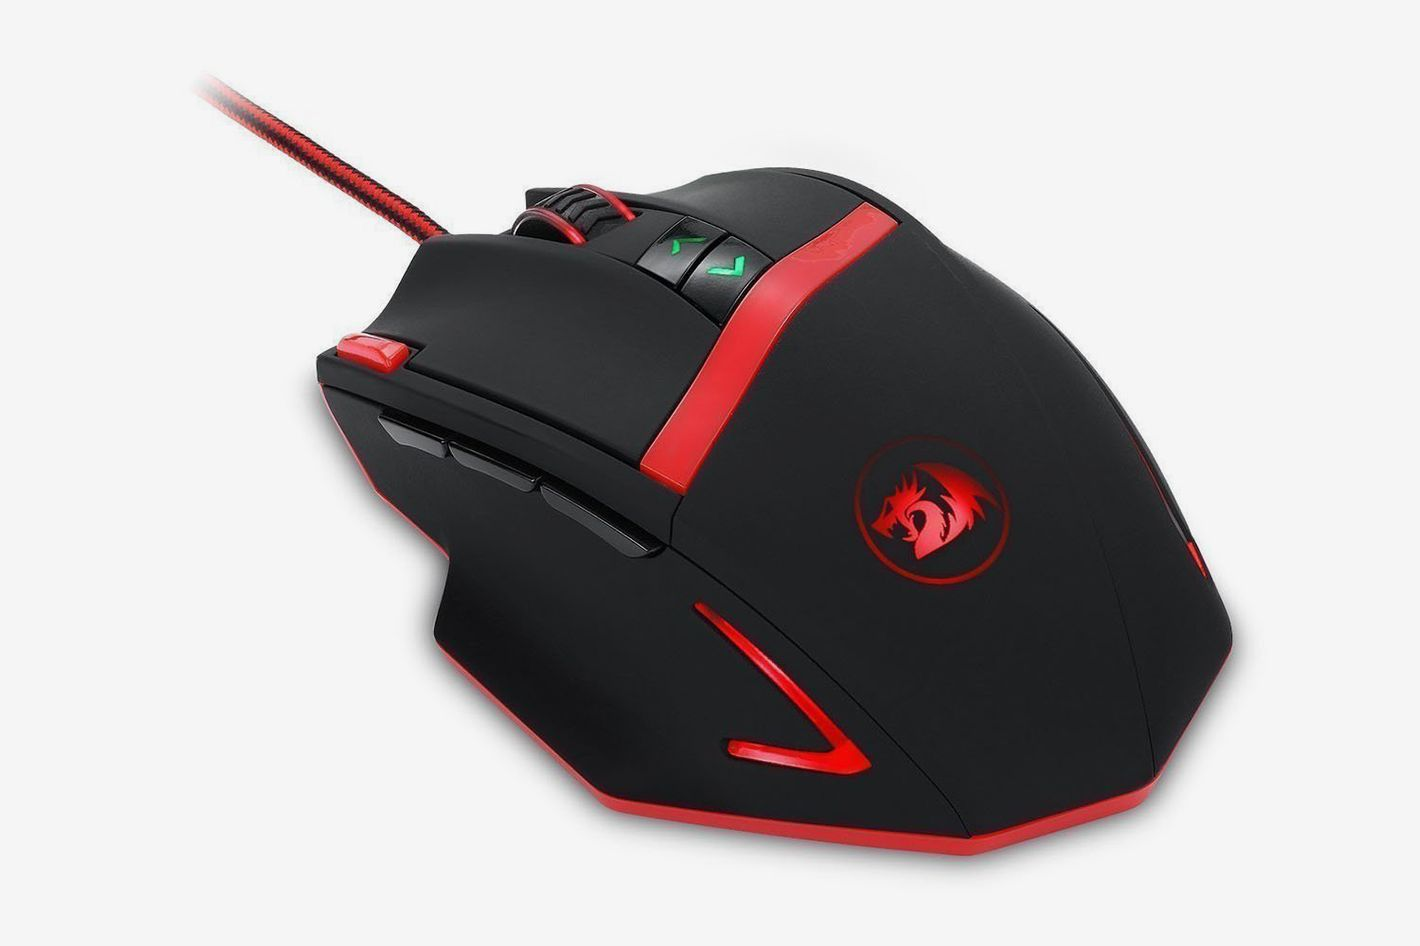 Best laser gaming mouse for moderate gamers Redragon